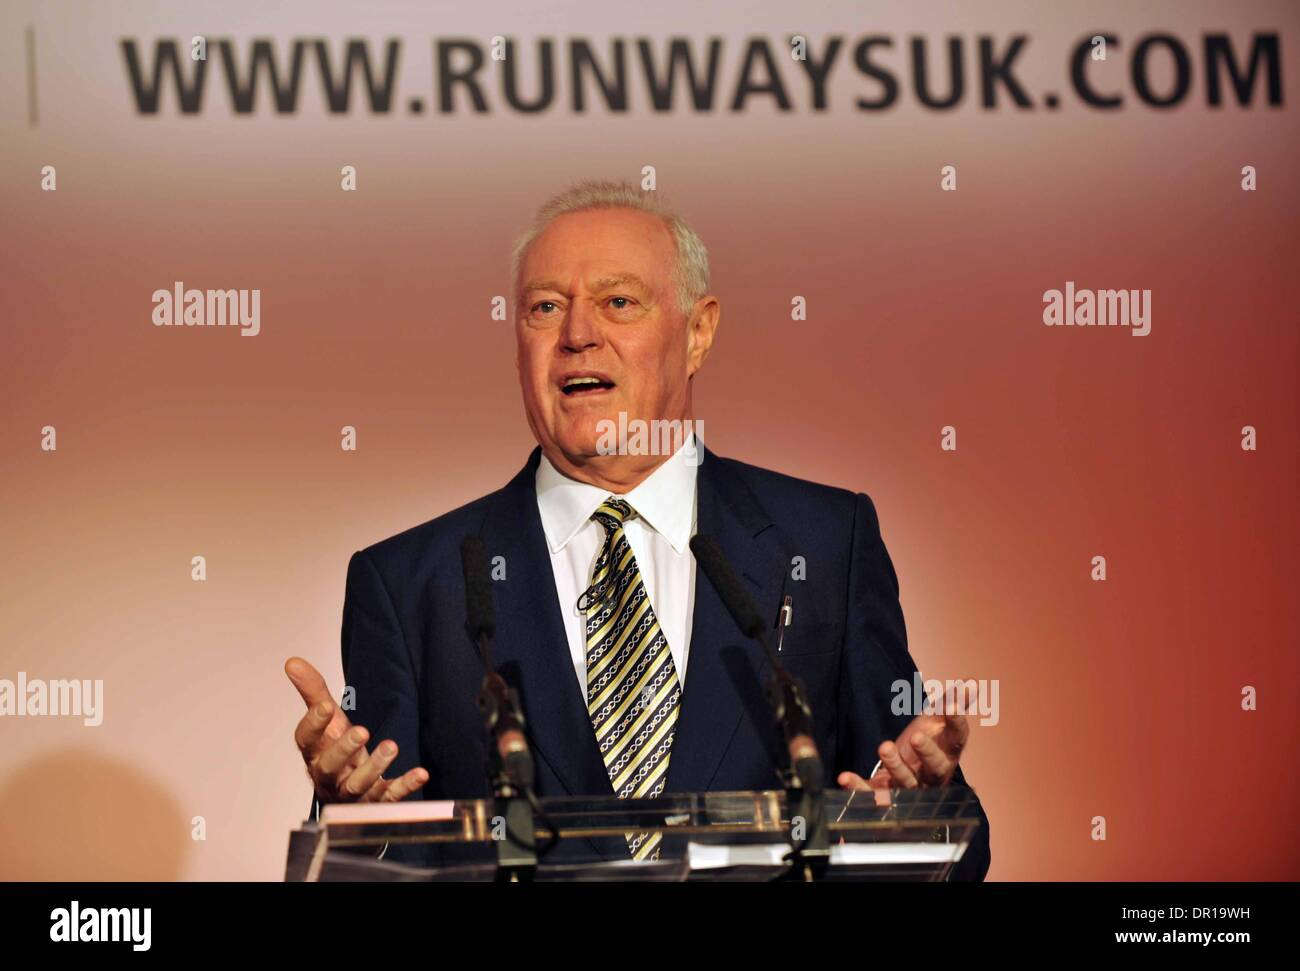 Runways UK conference, London. Britain, UK. Arguing for the Heathrow Northern runway extension Capt William 'Jock' Lowe says doubling its length will increase capacity. - Stock Image